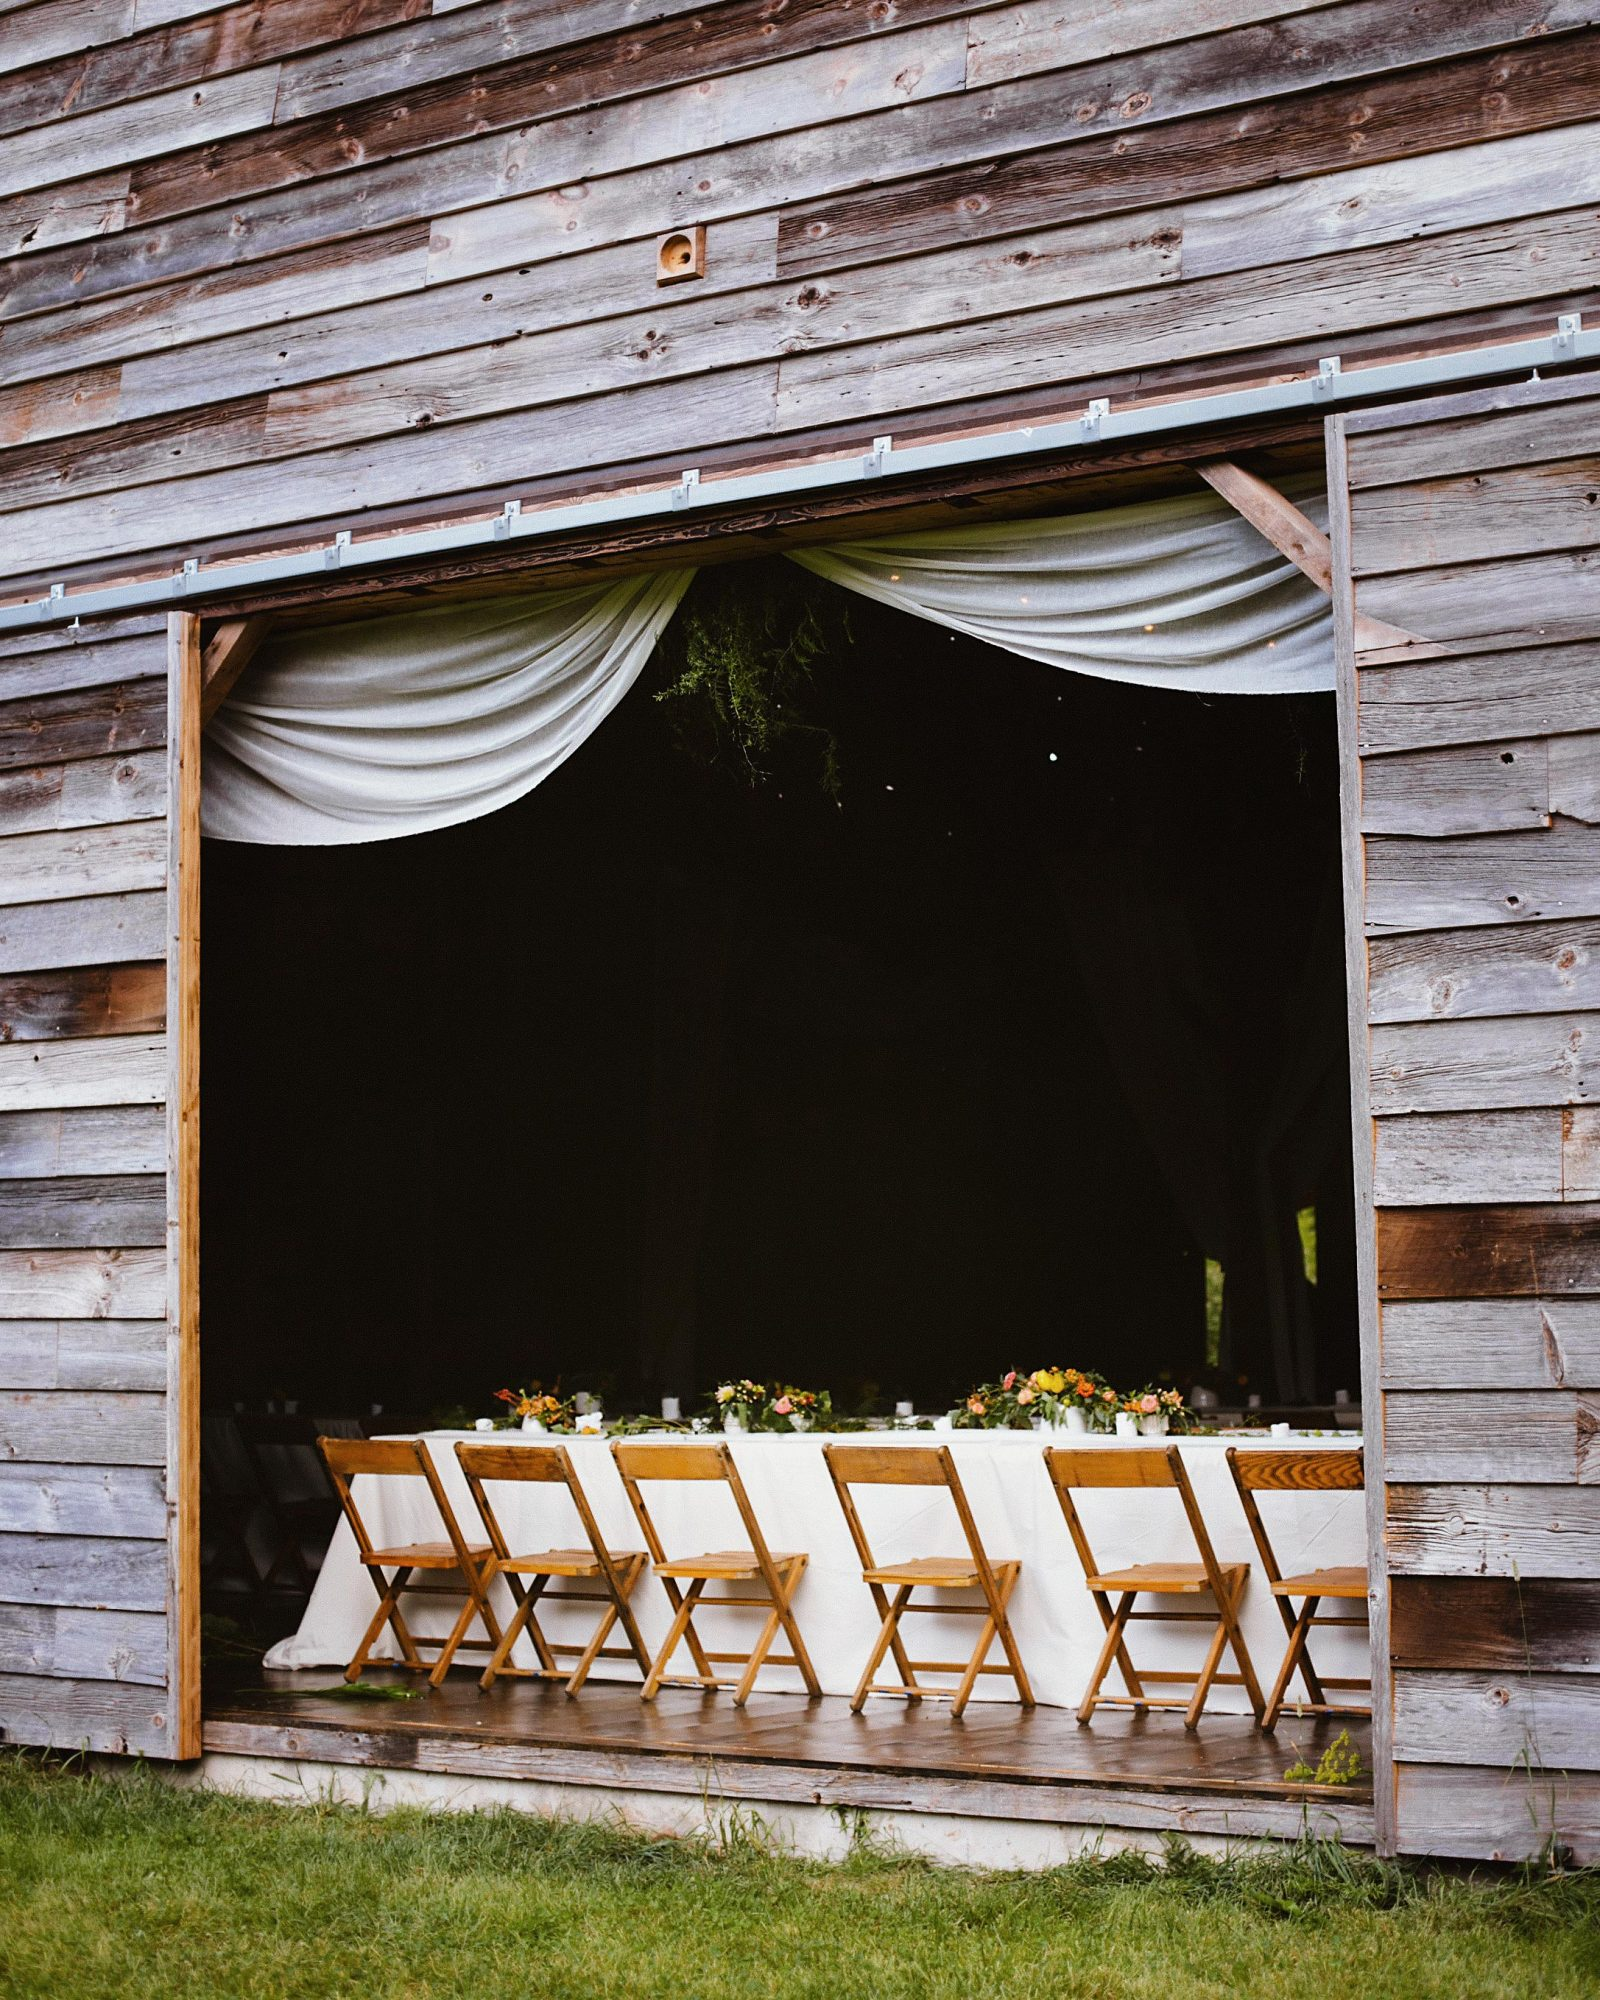 cat-vince-wedding-barn-031-s112646-0216-s112646-0216.jpg